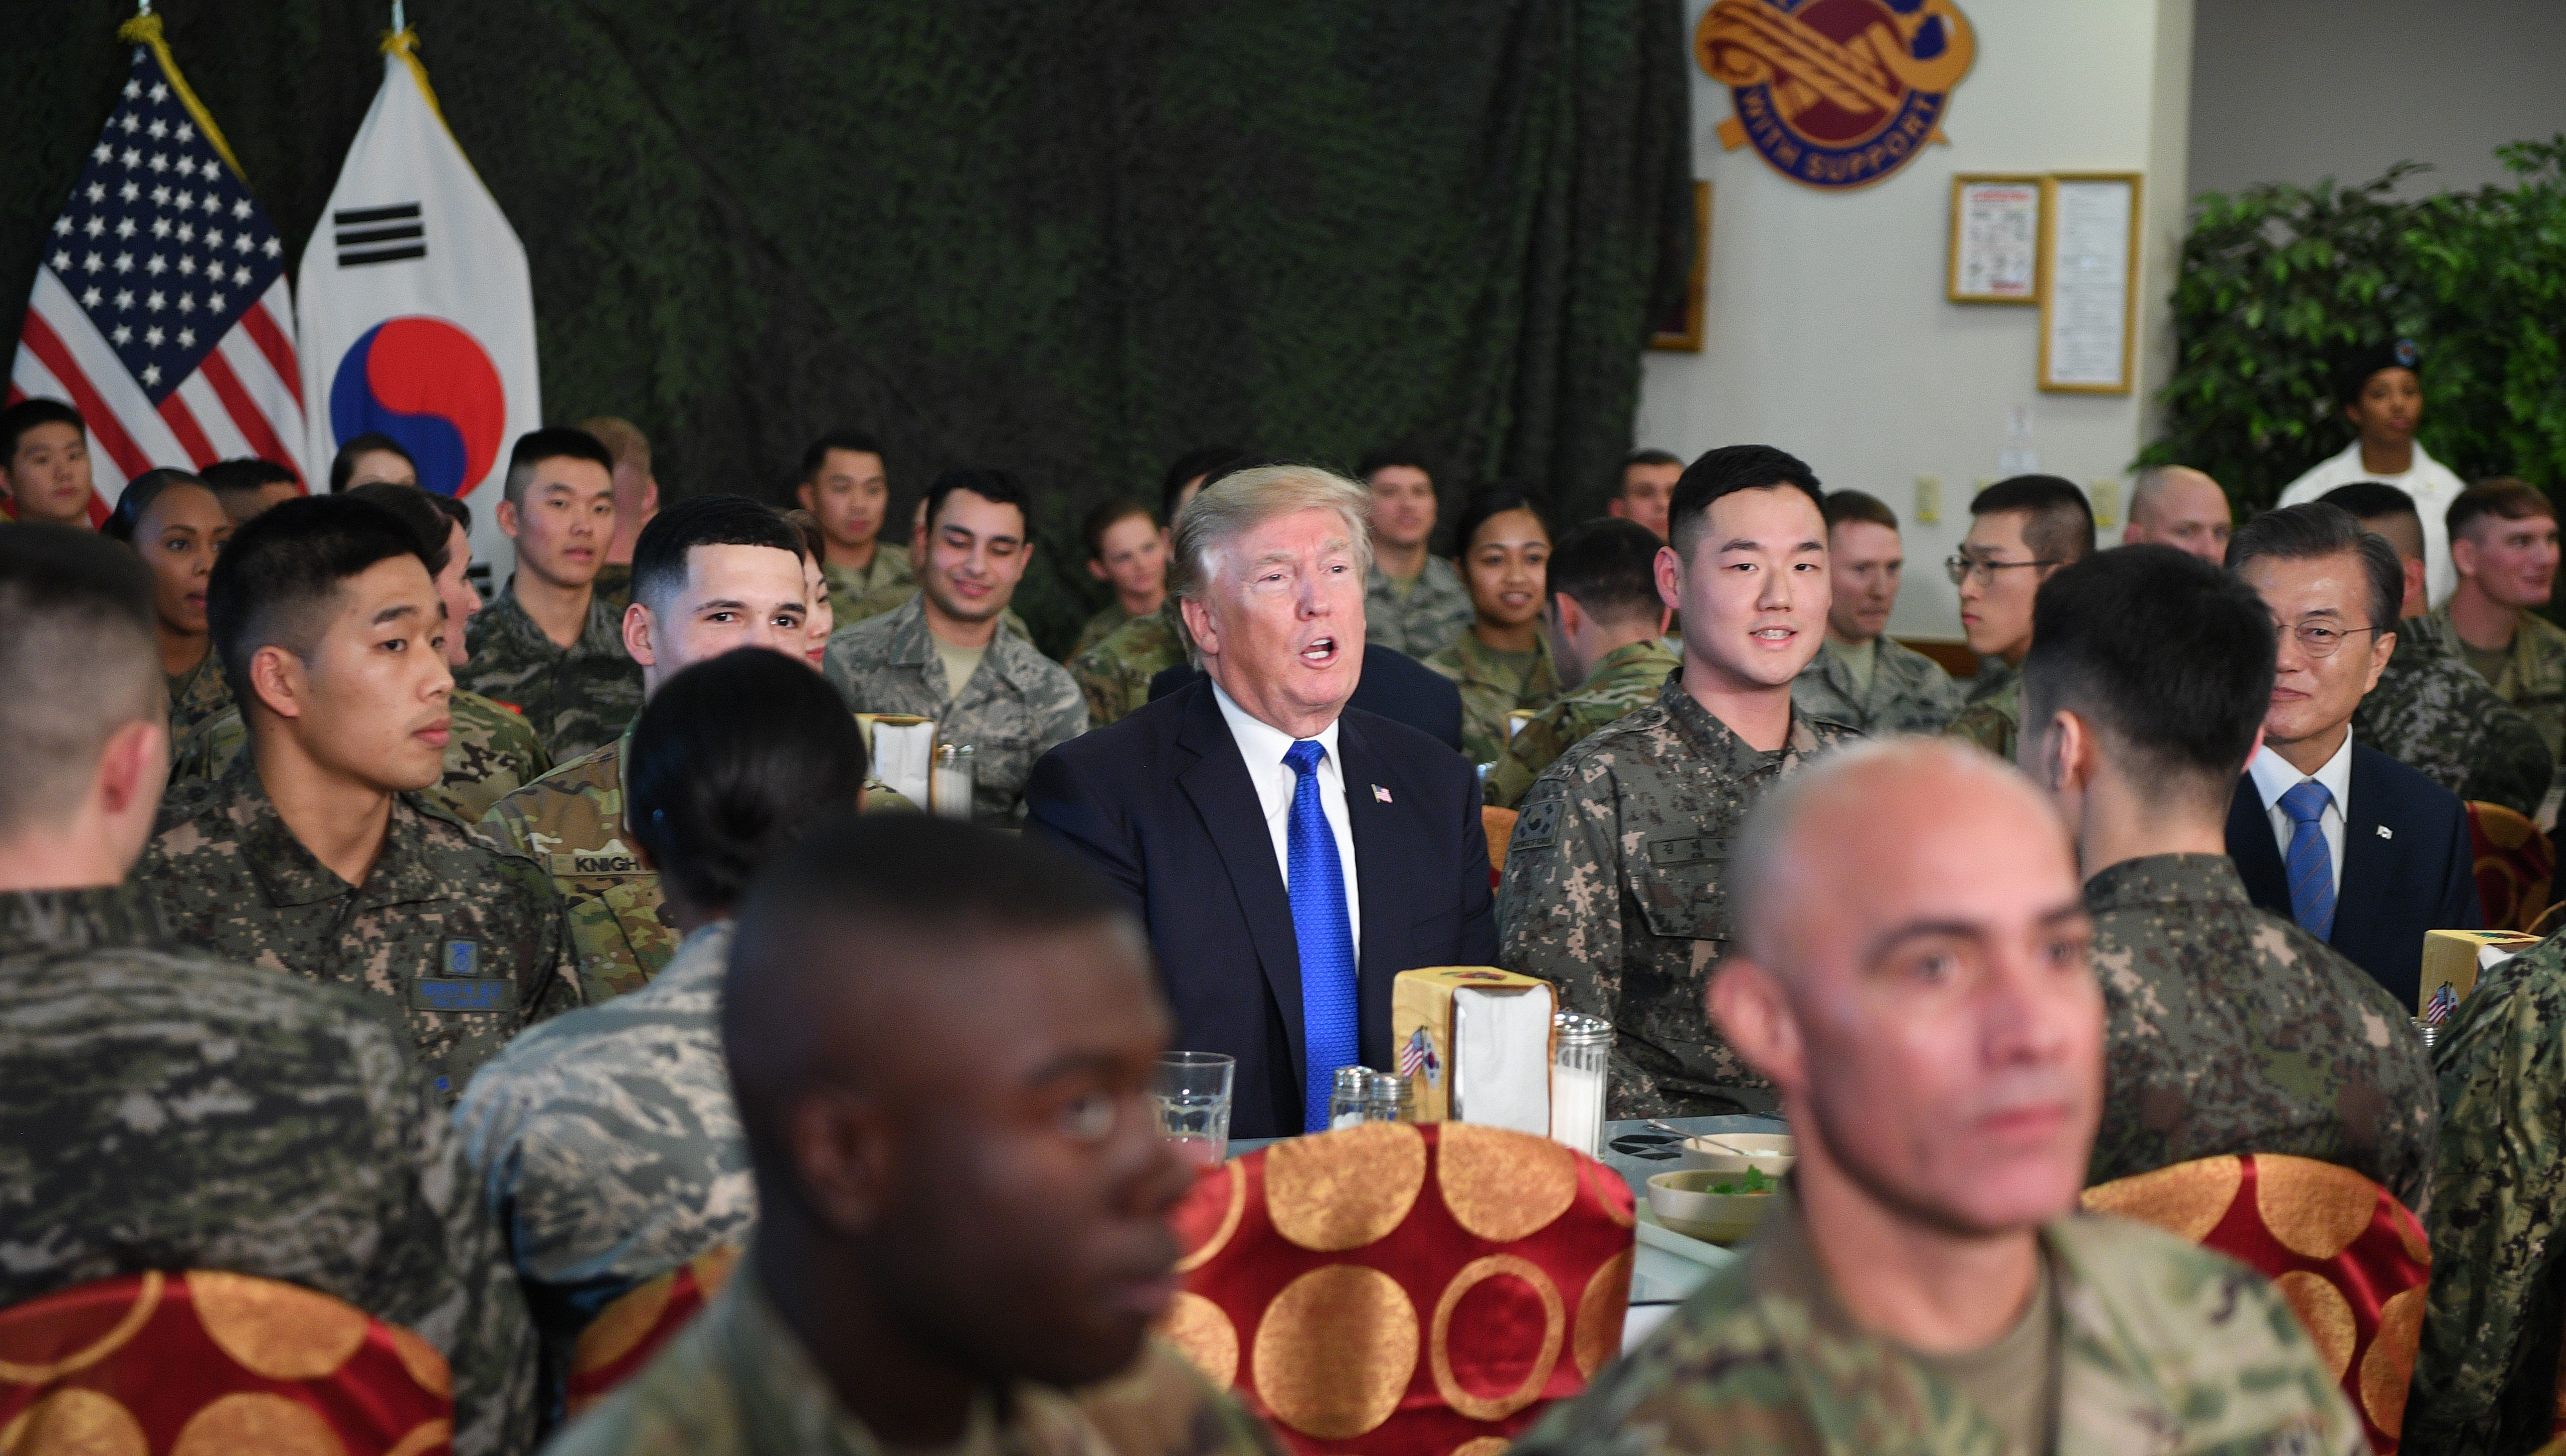 US President Donald Trump (C) talks to military personnel while South Korean President Moon Jae-In (R) looks on at Camp Humphreys in Pyeongtaek, south of Seoul on November 7, 2017. Trump's marathon Asia tour moves to South Korea, another key ally in the struggle with nuclear-armed North Korea, but one with deep reservations about the US president's strategy for dealing with the crisis. JIM WATSON/AFP/Getty Images